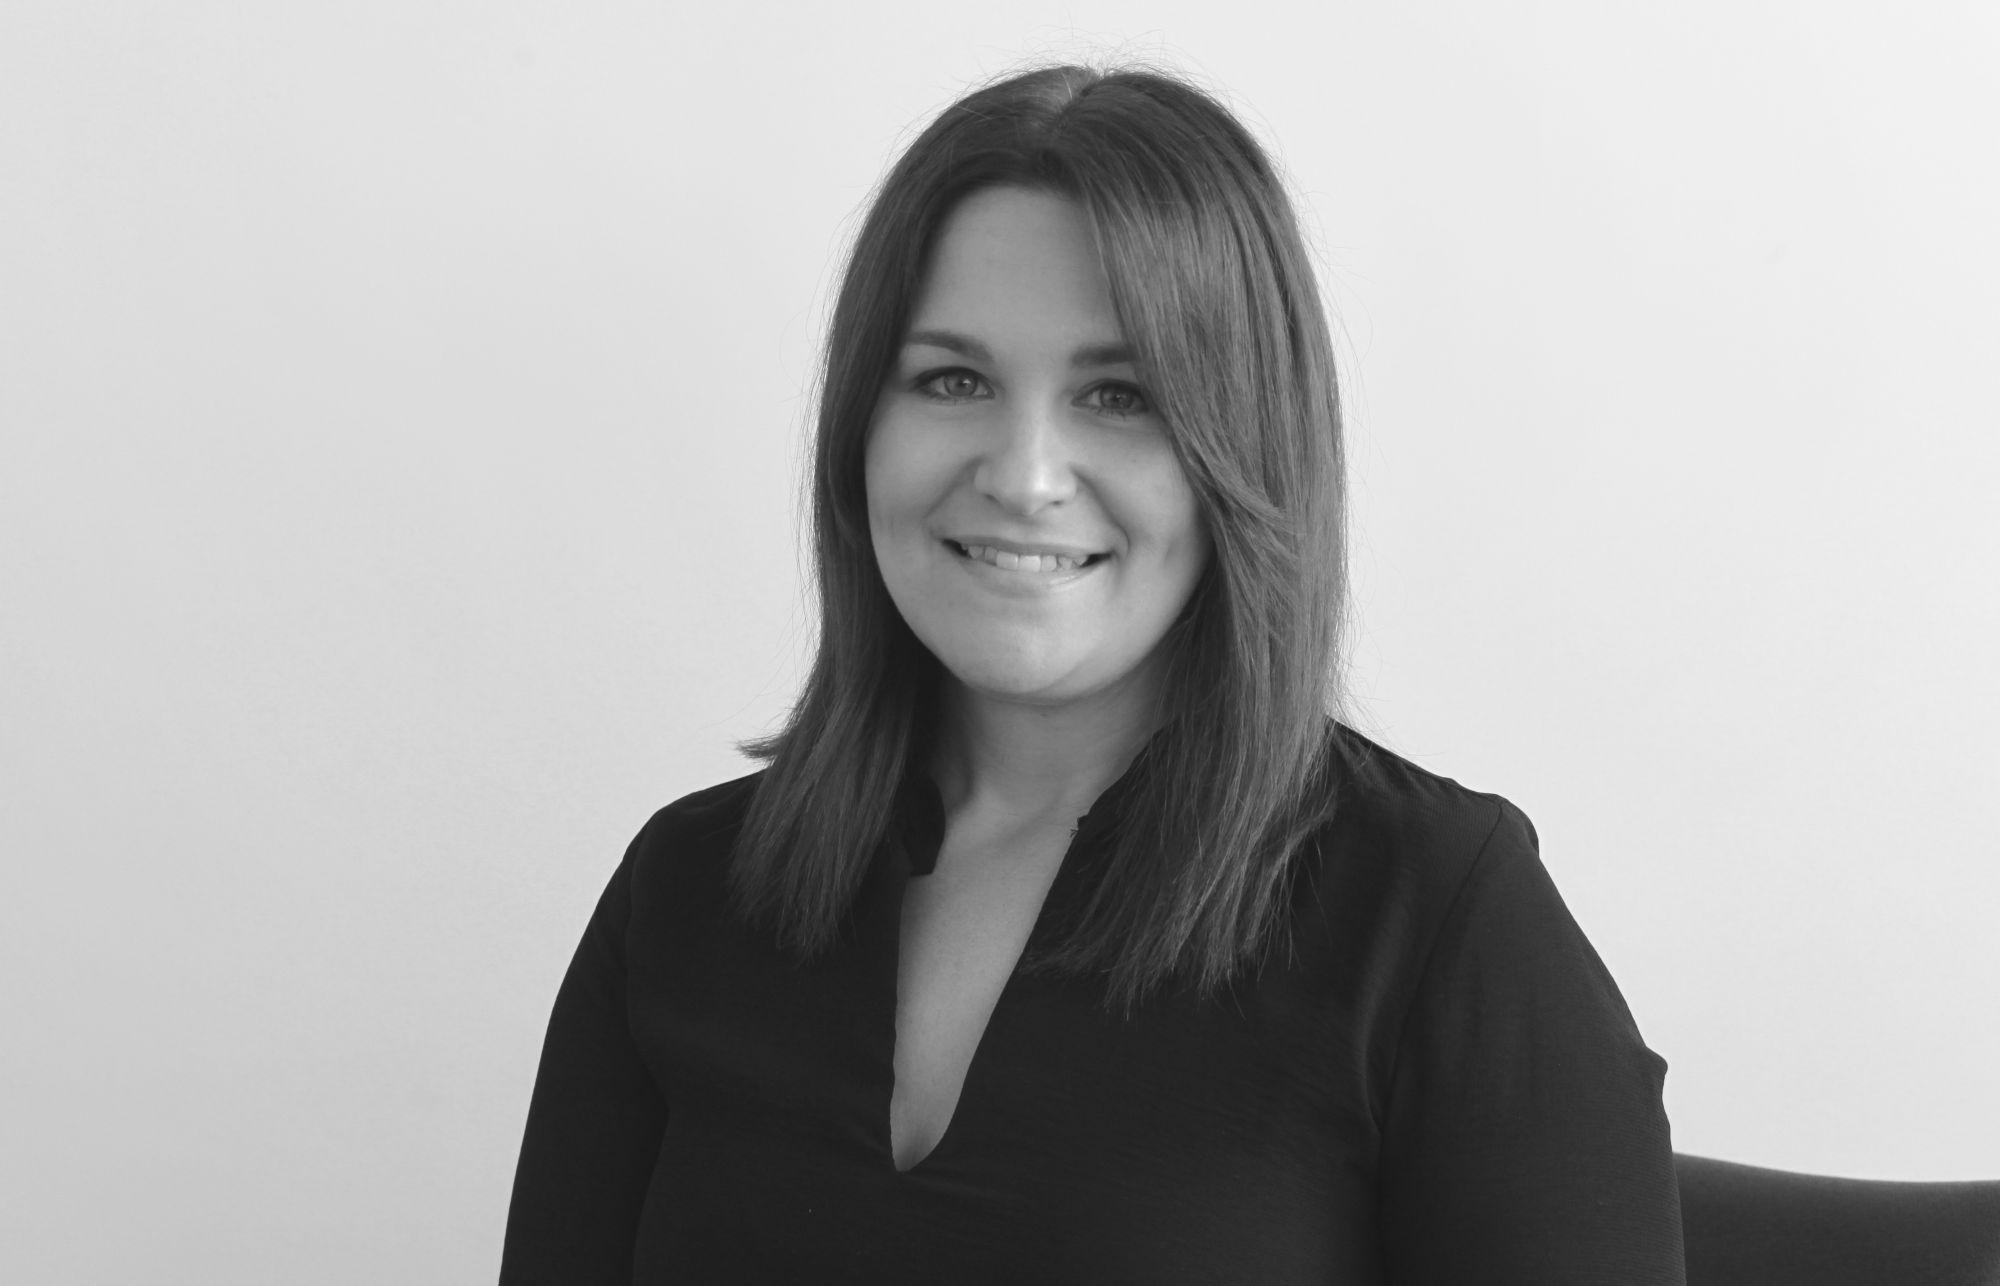 Image of Emma Velati, Chartered Legal Executive